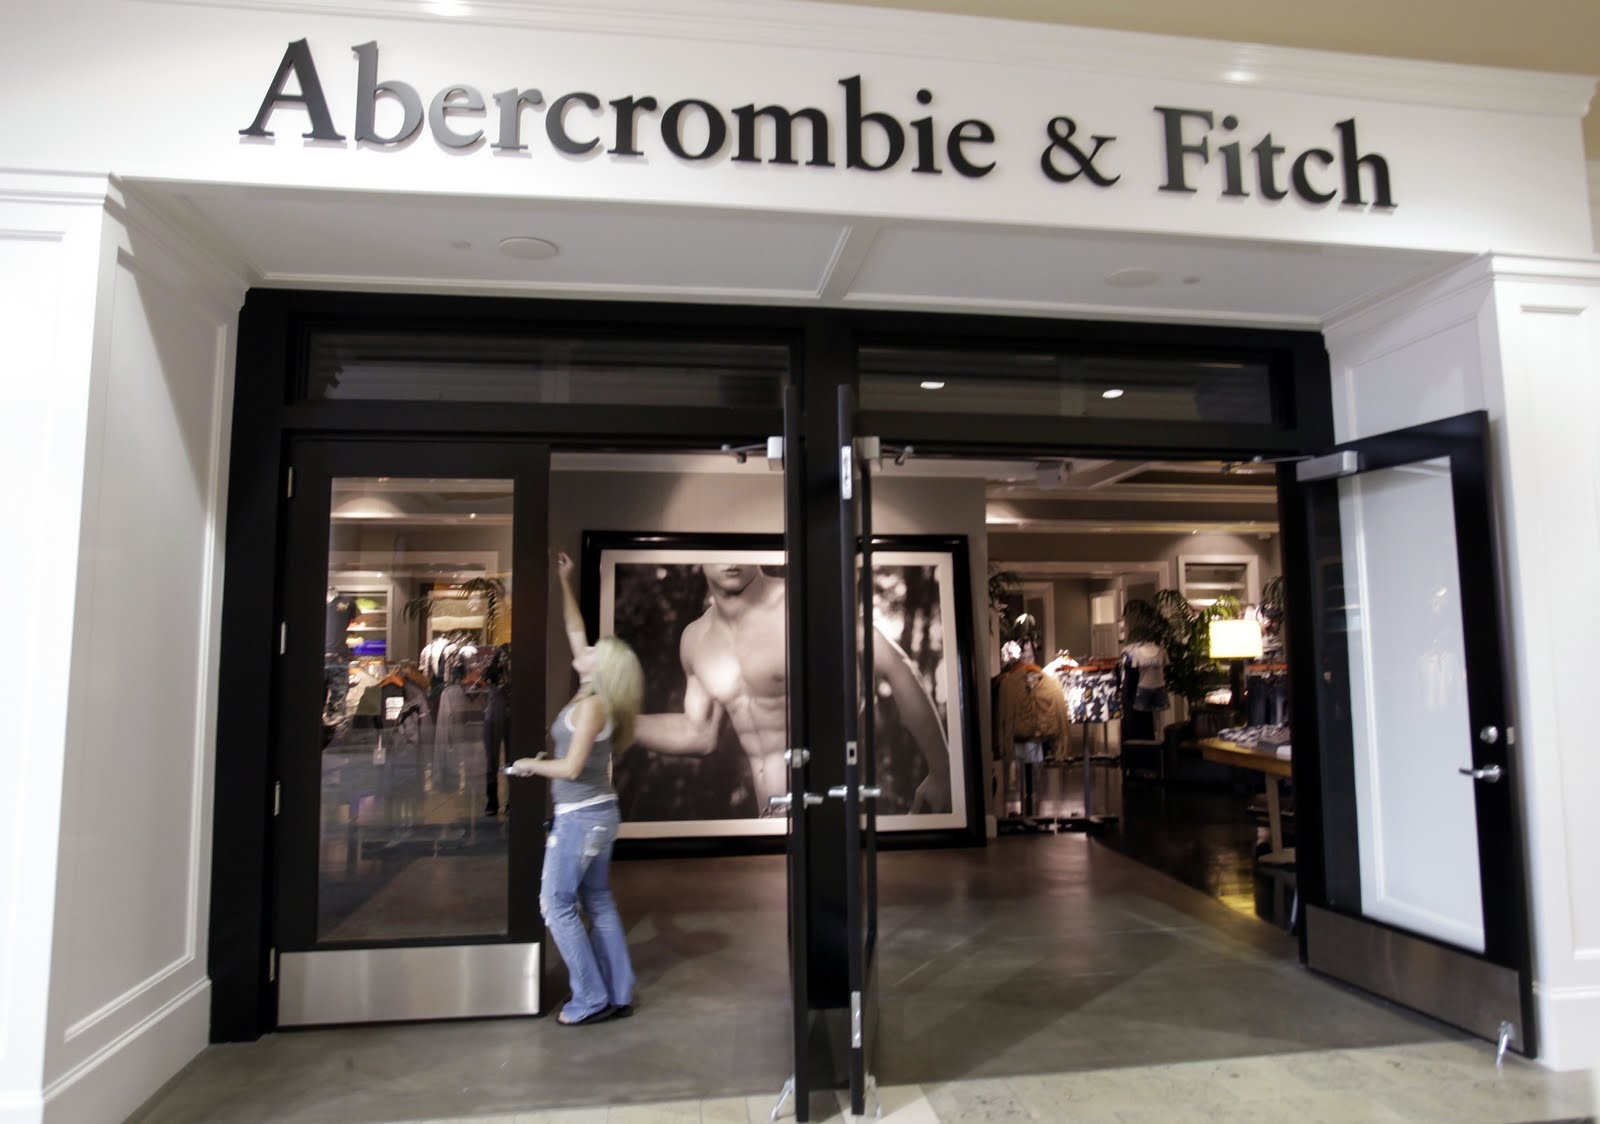 Abercrombie & Fitch Co.'s (ANF) Hold Rating Reaffirmed at Stifel Nicolaus